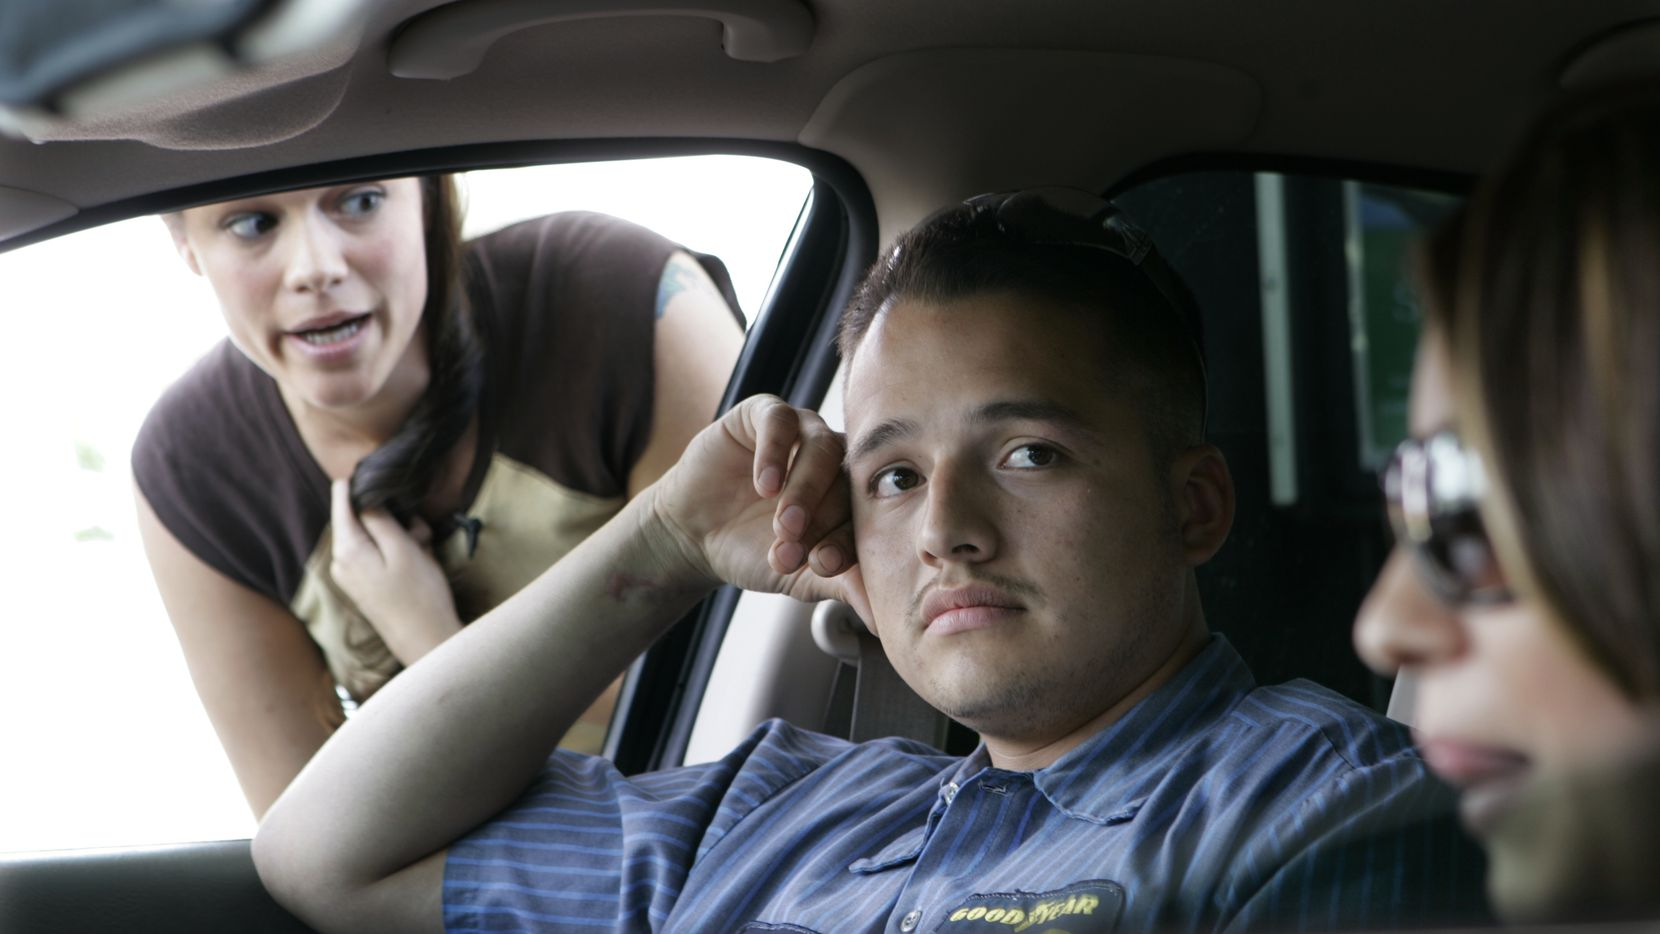 """In this 2005 file photo, Alicia Smith (left) confronts Luis Hernandez (middle) during filming on an episode of """"Cheaters."""""""